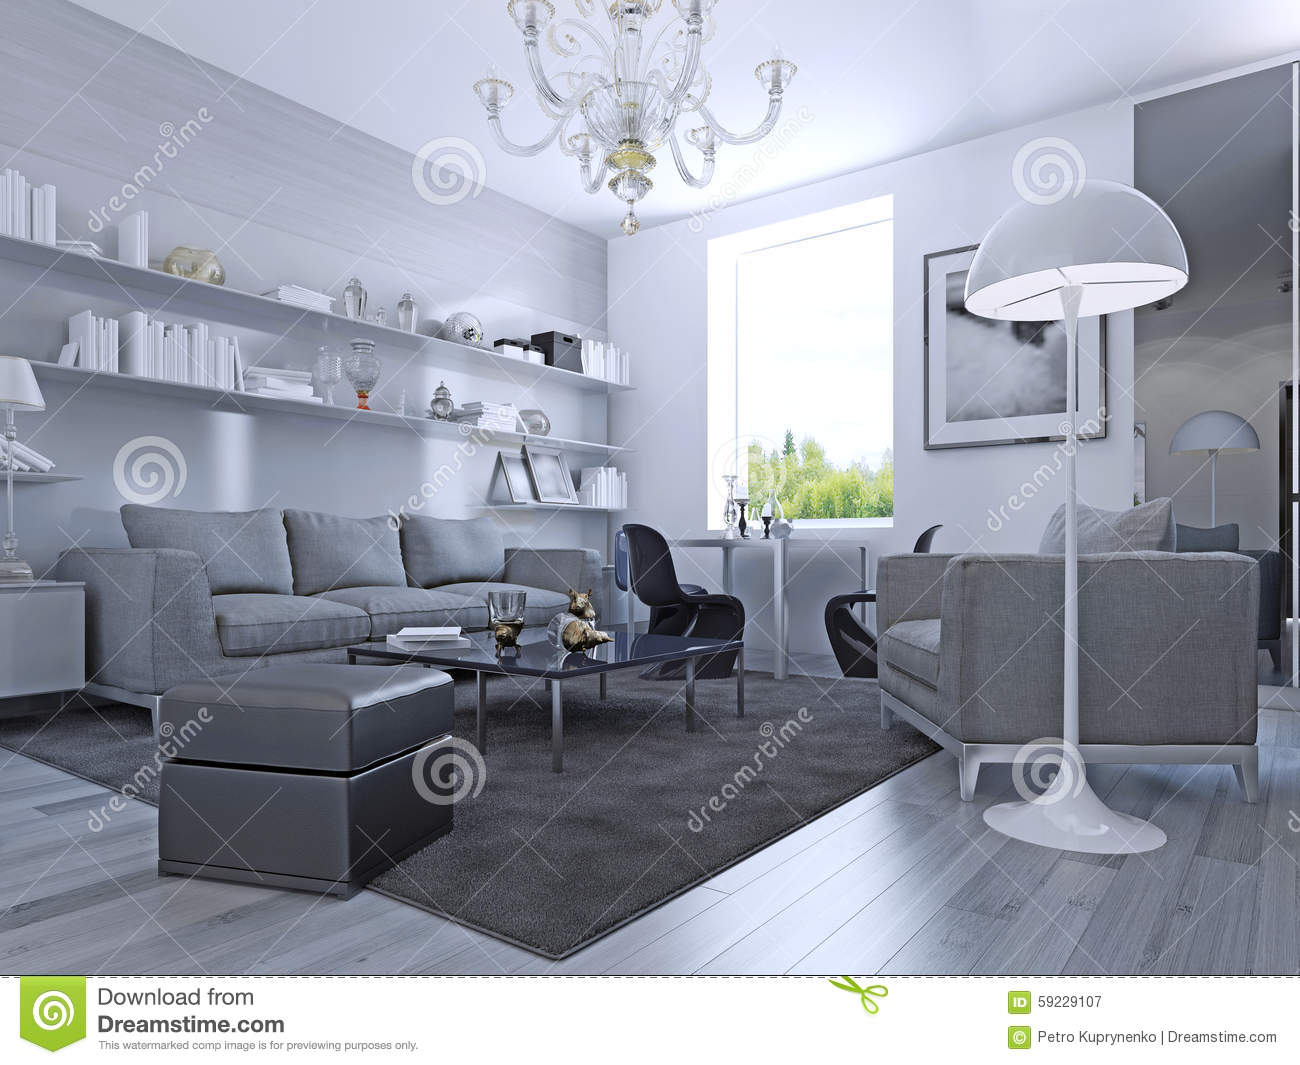 Living room in modern style elegant living room with white walls and light grey laminate flooring wall system with white shelves ikea furniture